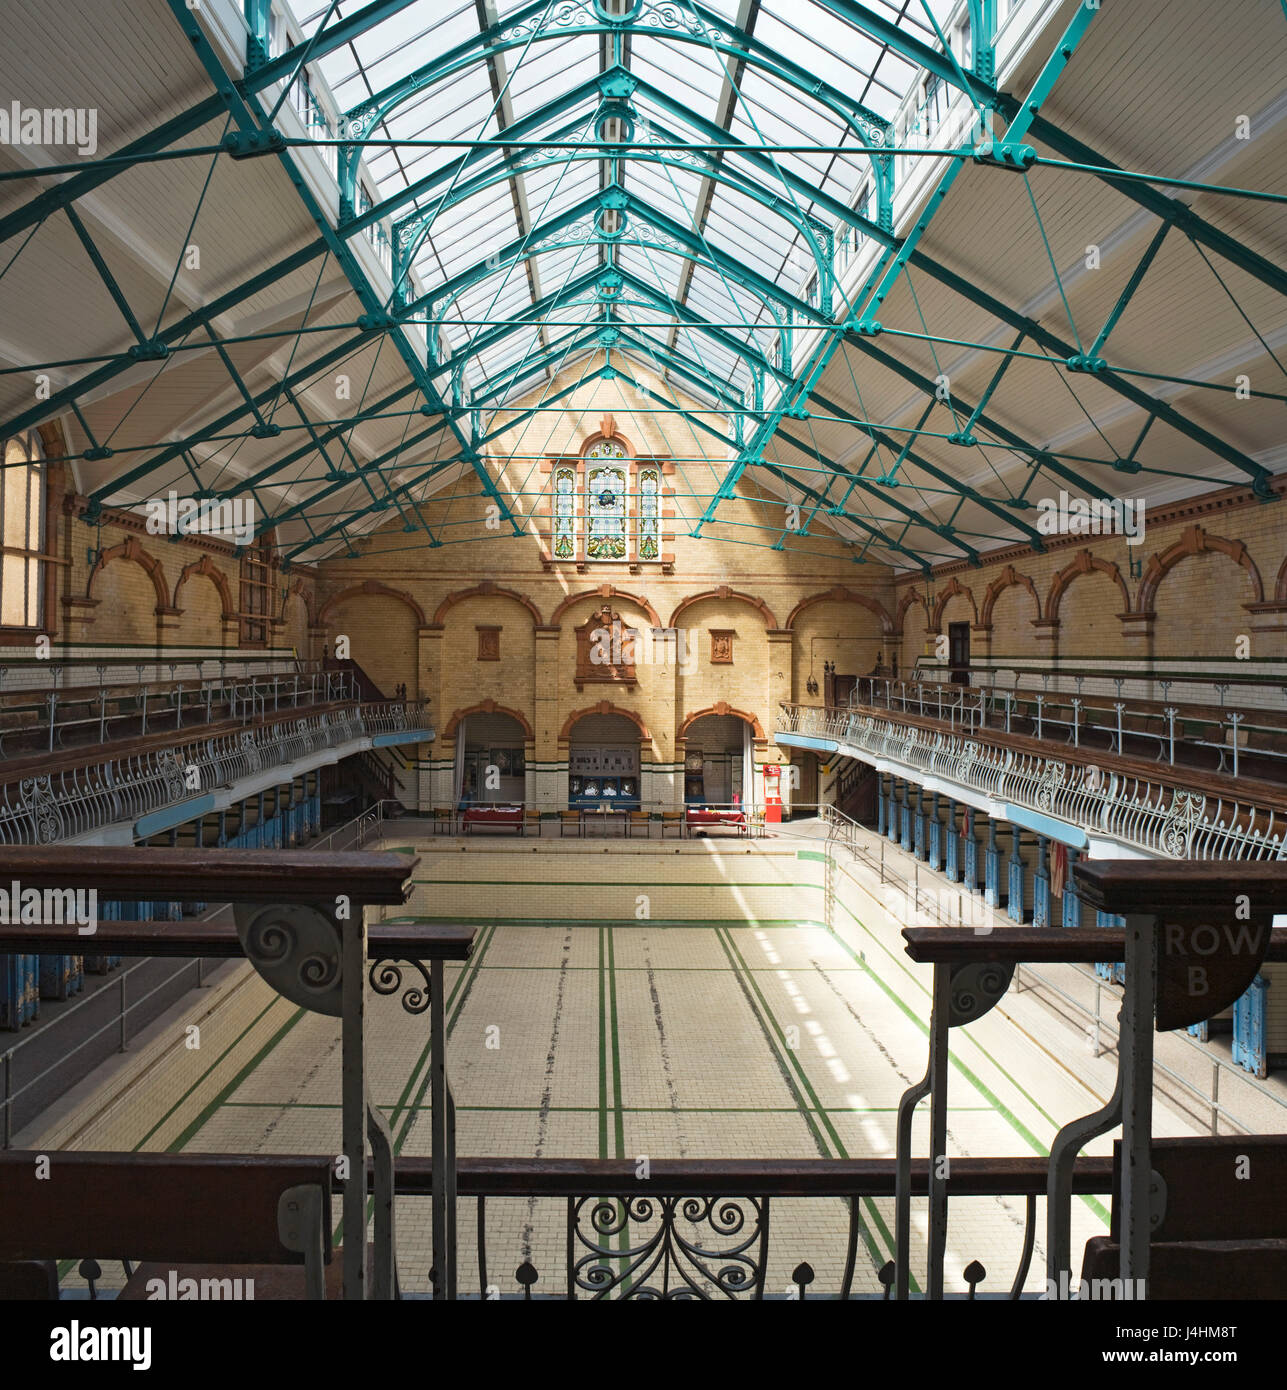 Elevated view through the swimming hall with pool before refurbishment. Victoria Baths, Manchester, United Kingdom. - Stock Image